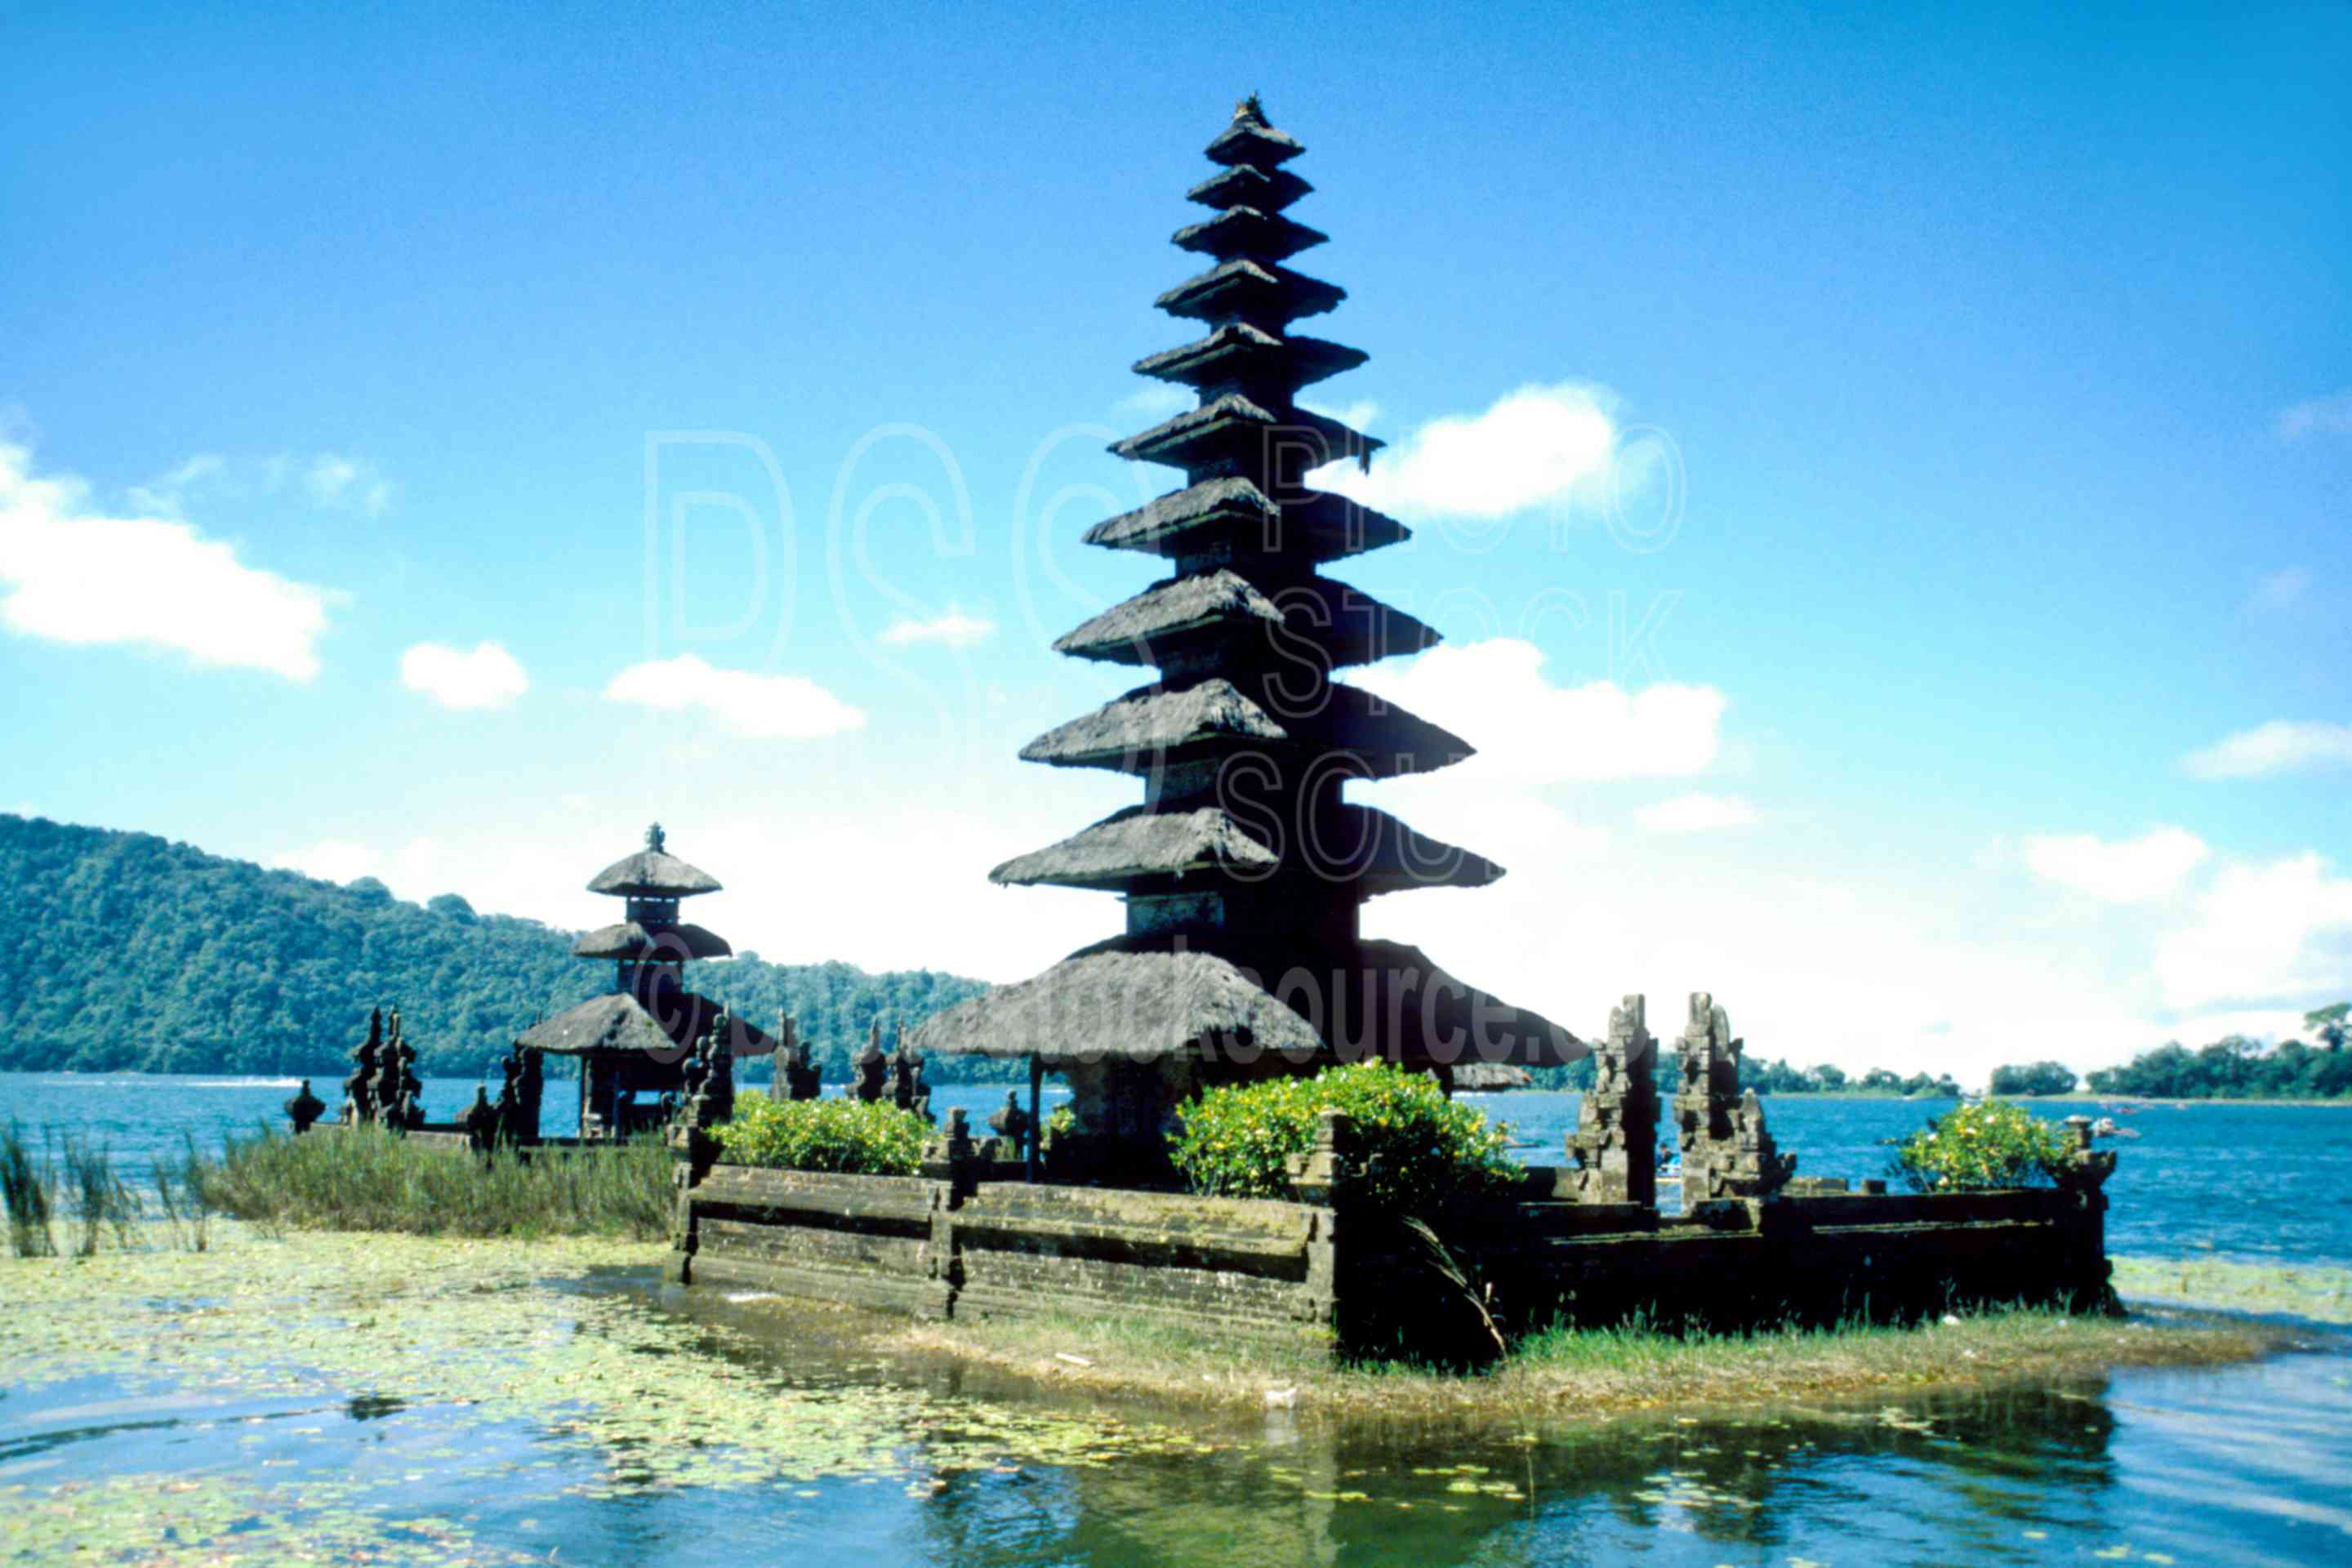 Pura Ulun Danu,lake,ritual,lakes rivers,architecture